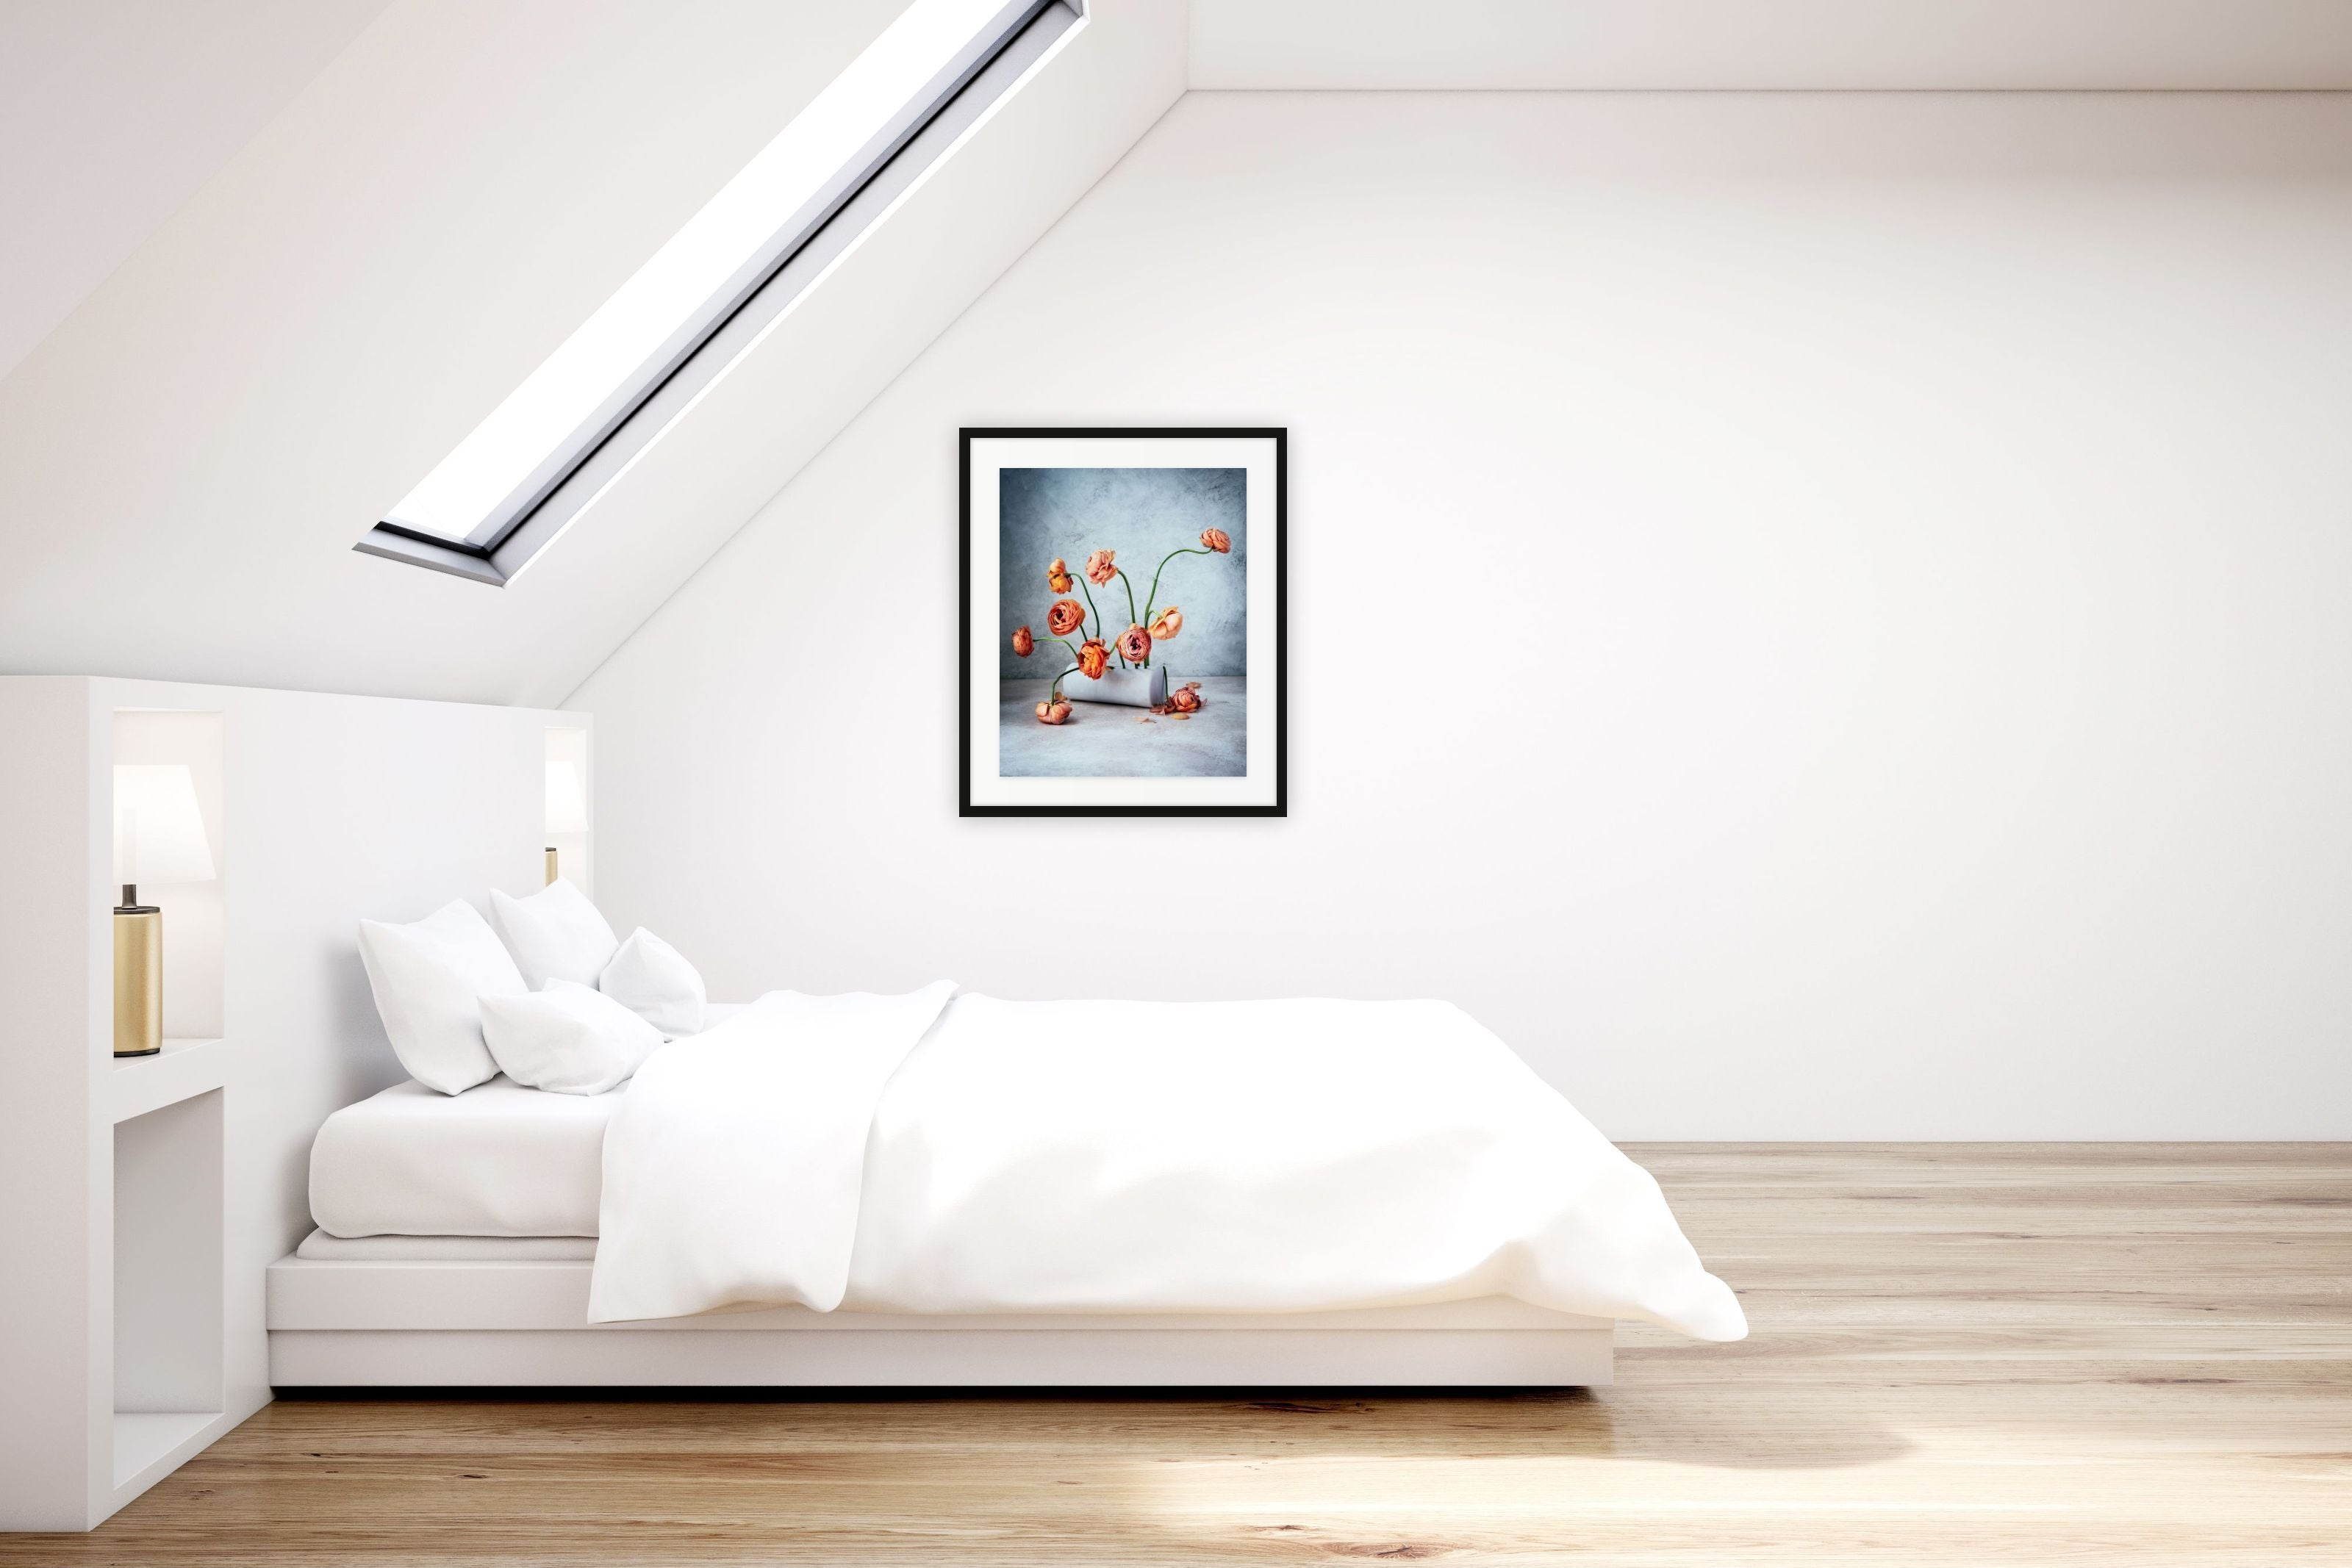 my art print Perfectionism would make a lovely addition to your spring-cleaned space